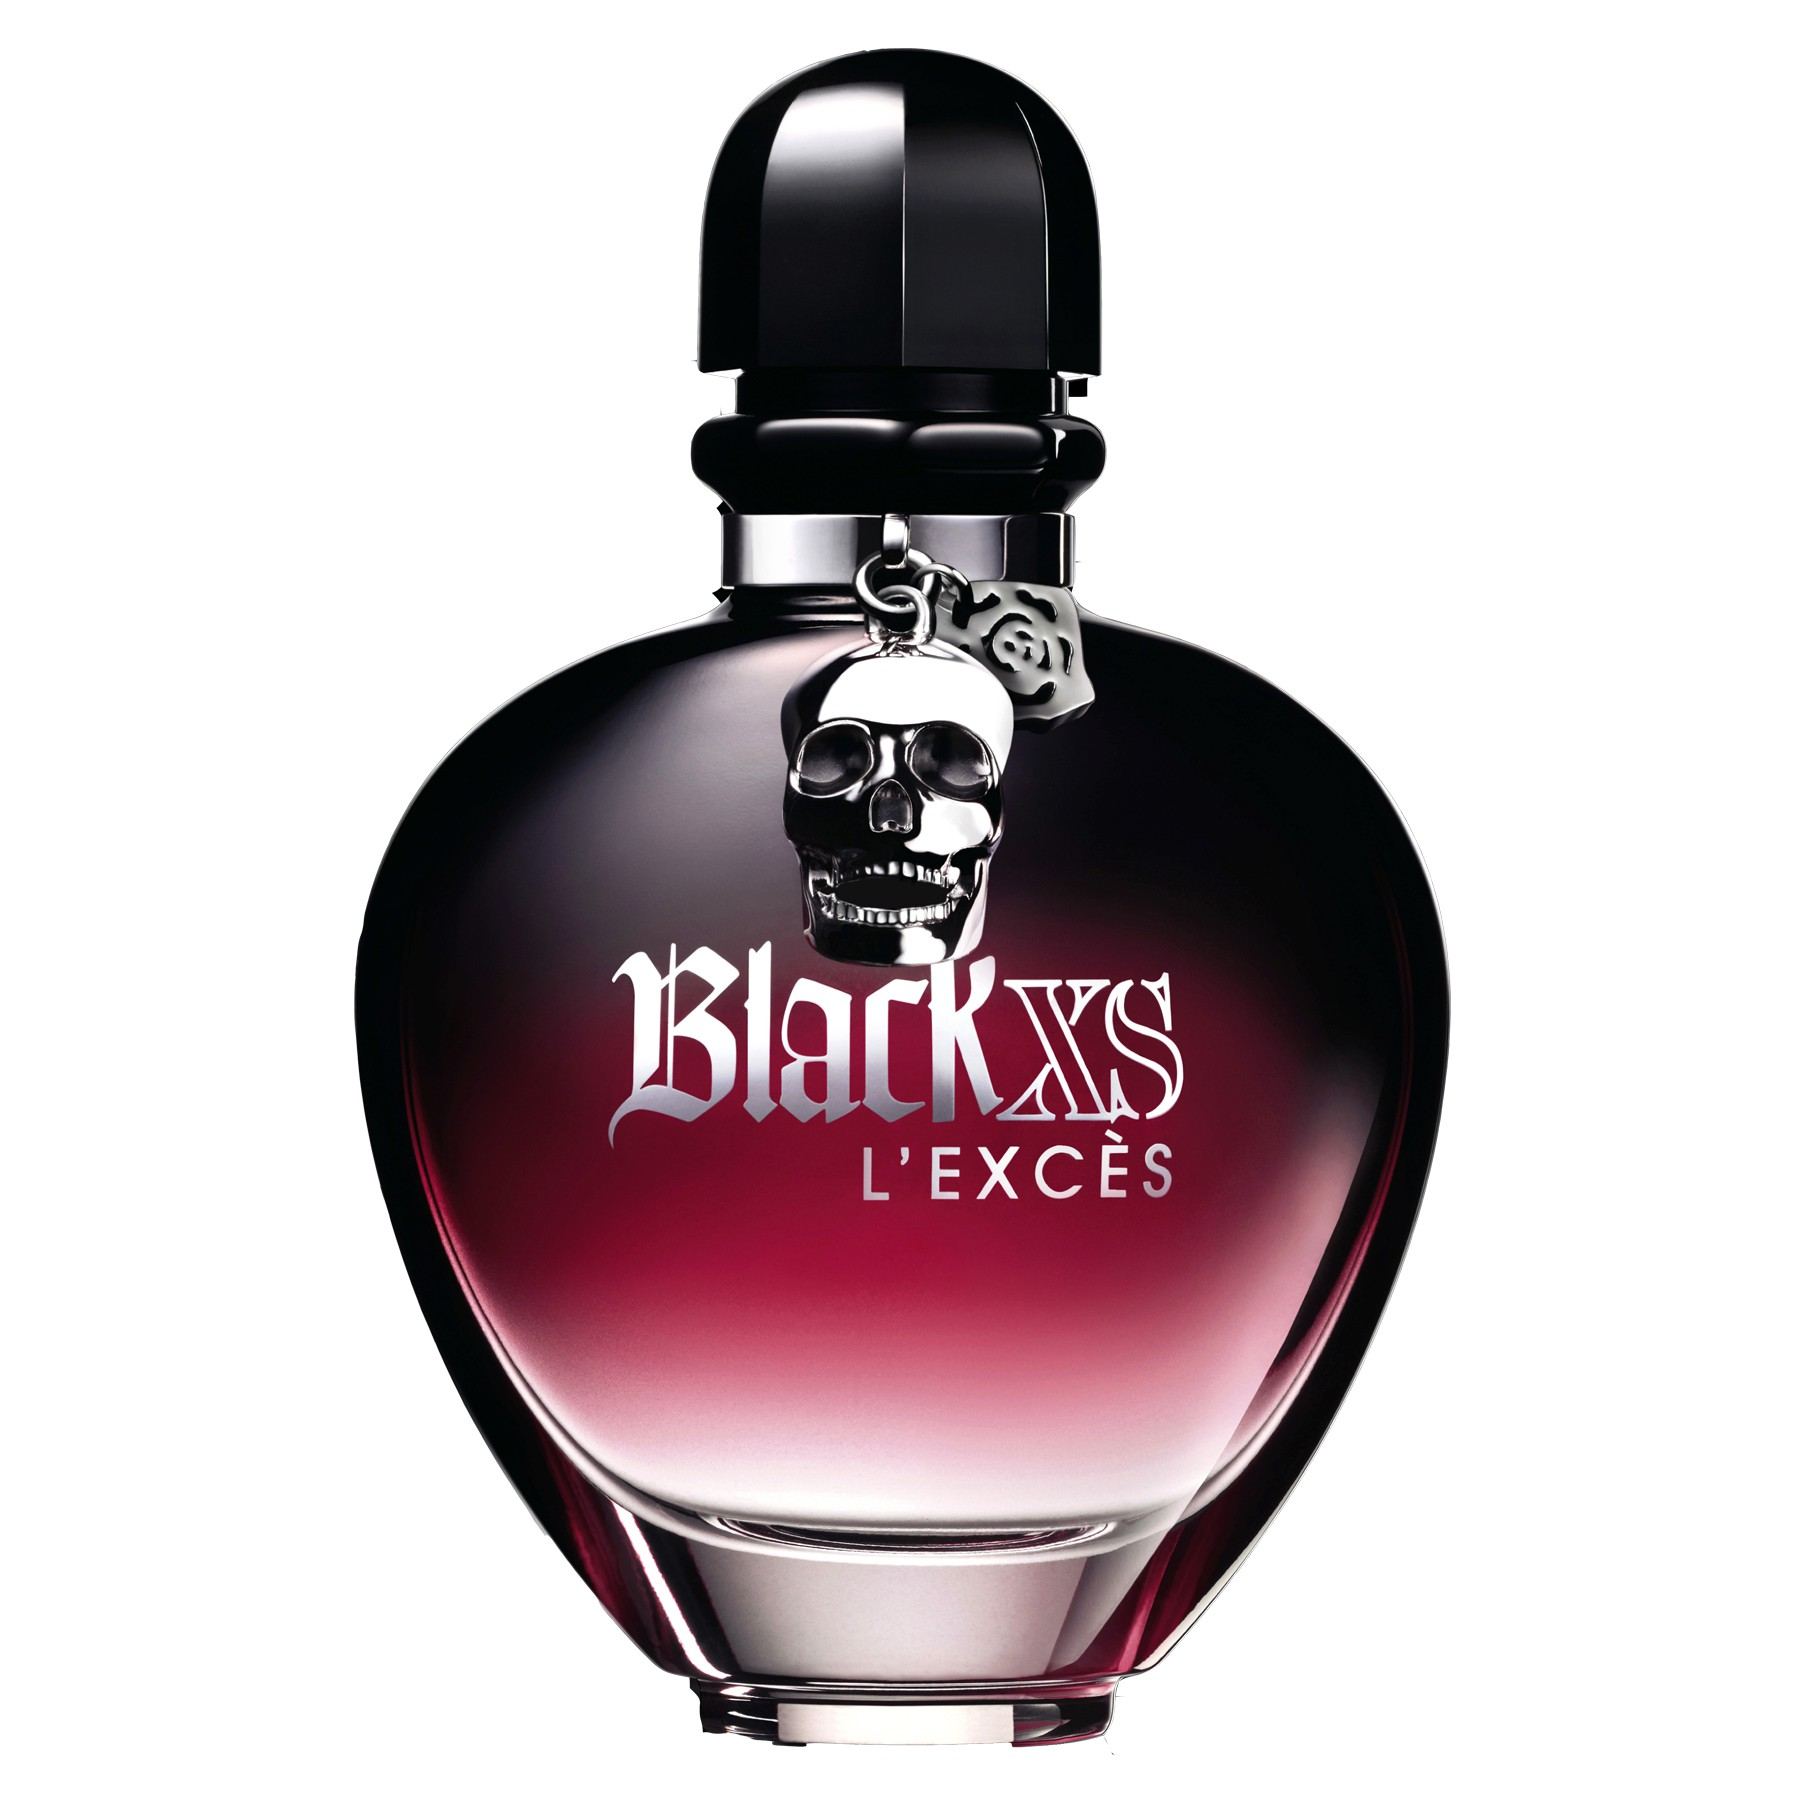 Paco Rabanne Black XS L'Exces for Her аромат для женщин